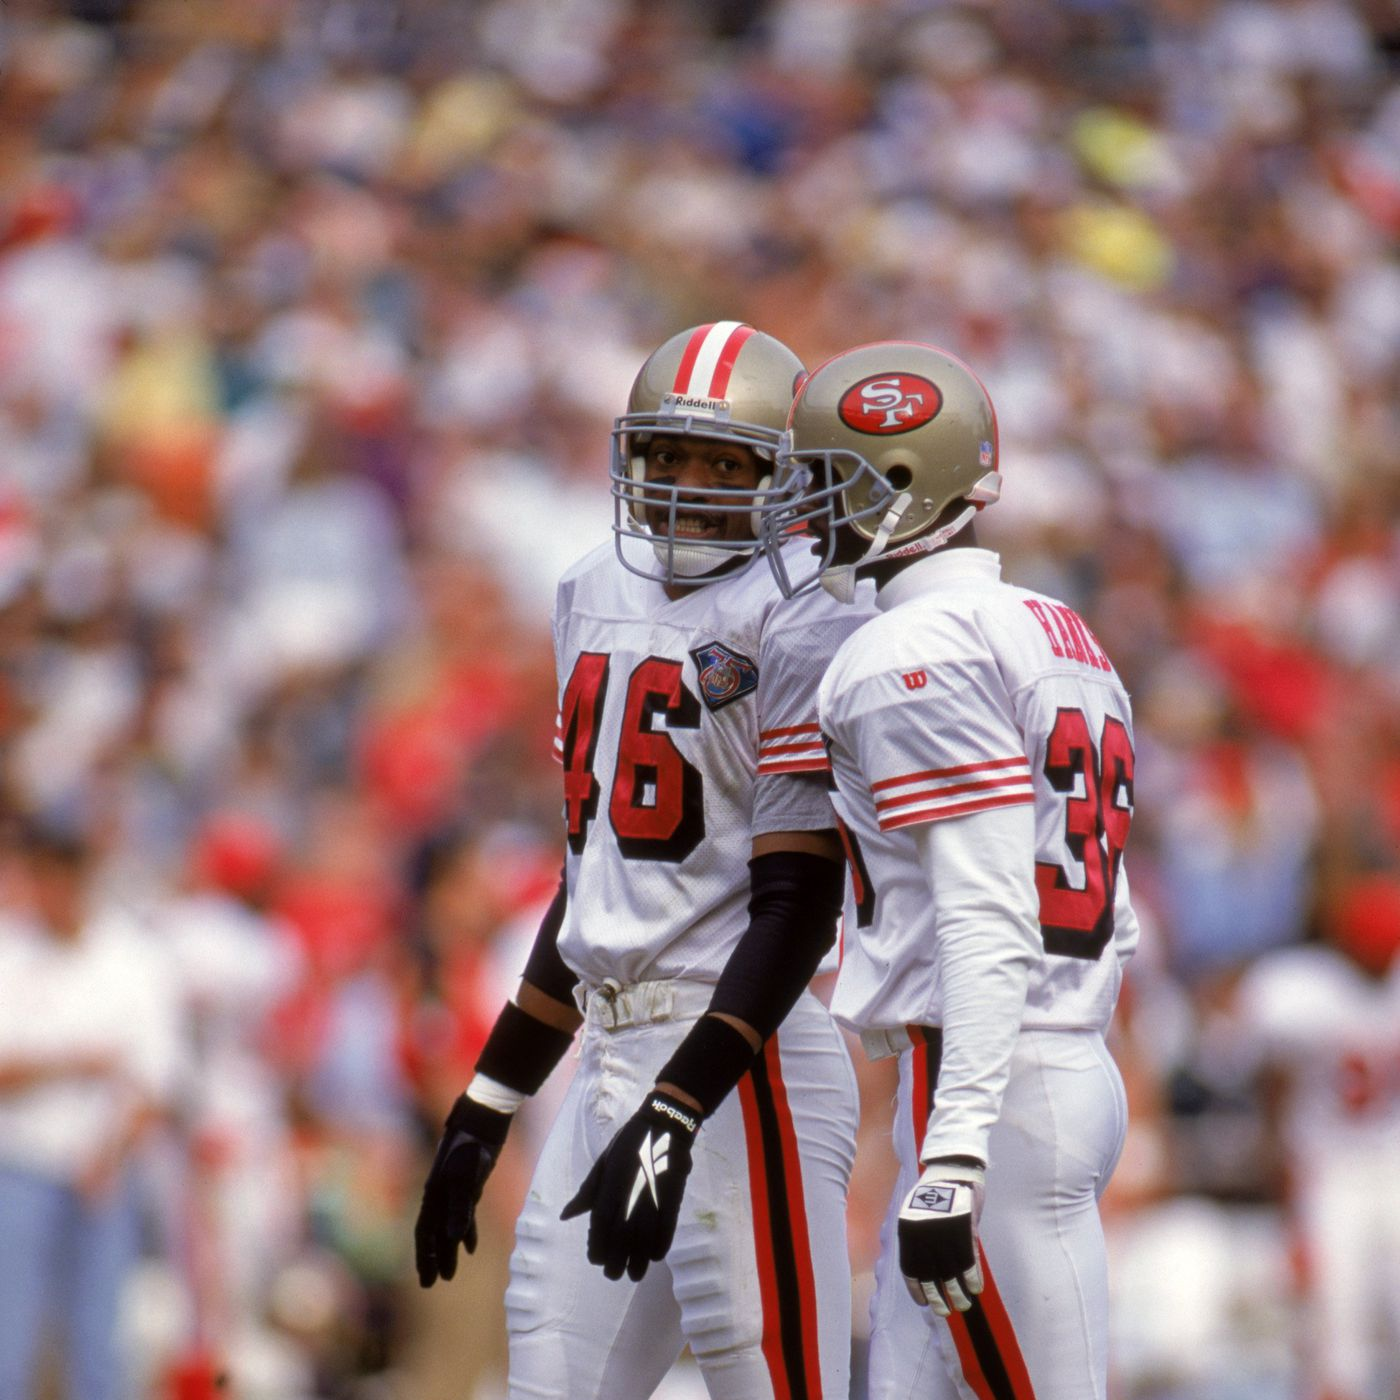 bfdc9af5c85 49ers confirm they will announce alternate  throwback  uniforms on  Wednesday - Niners Nation